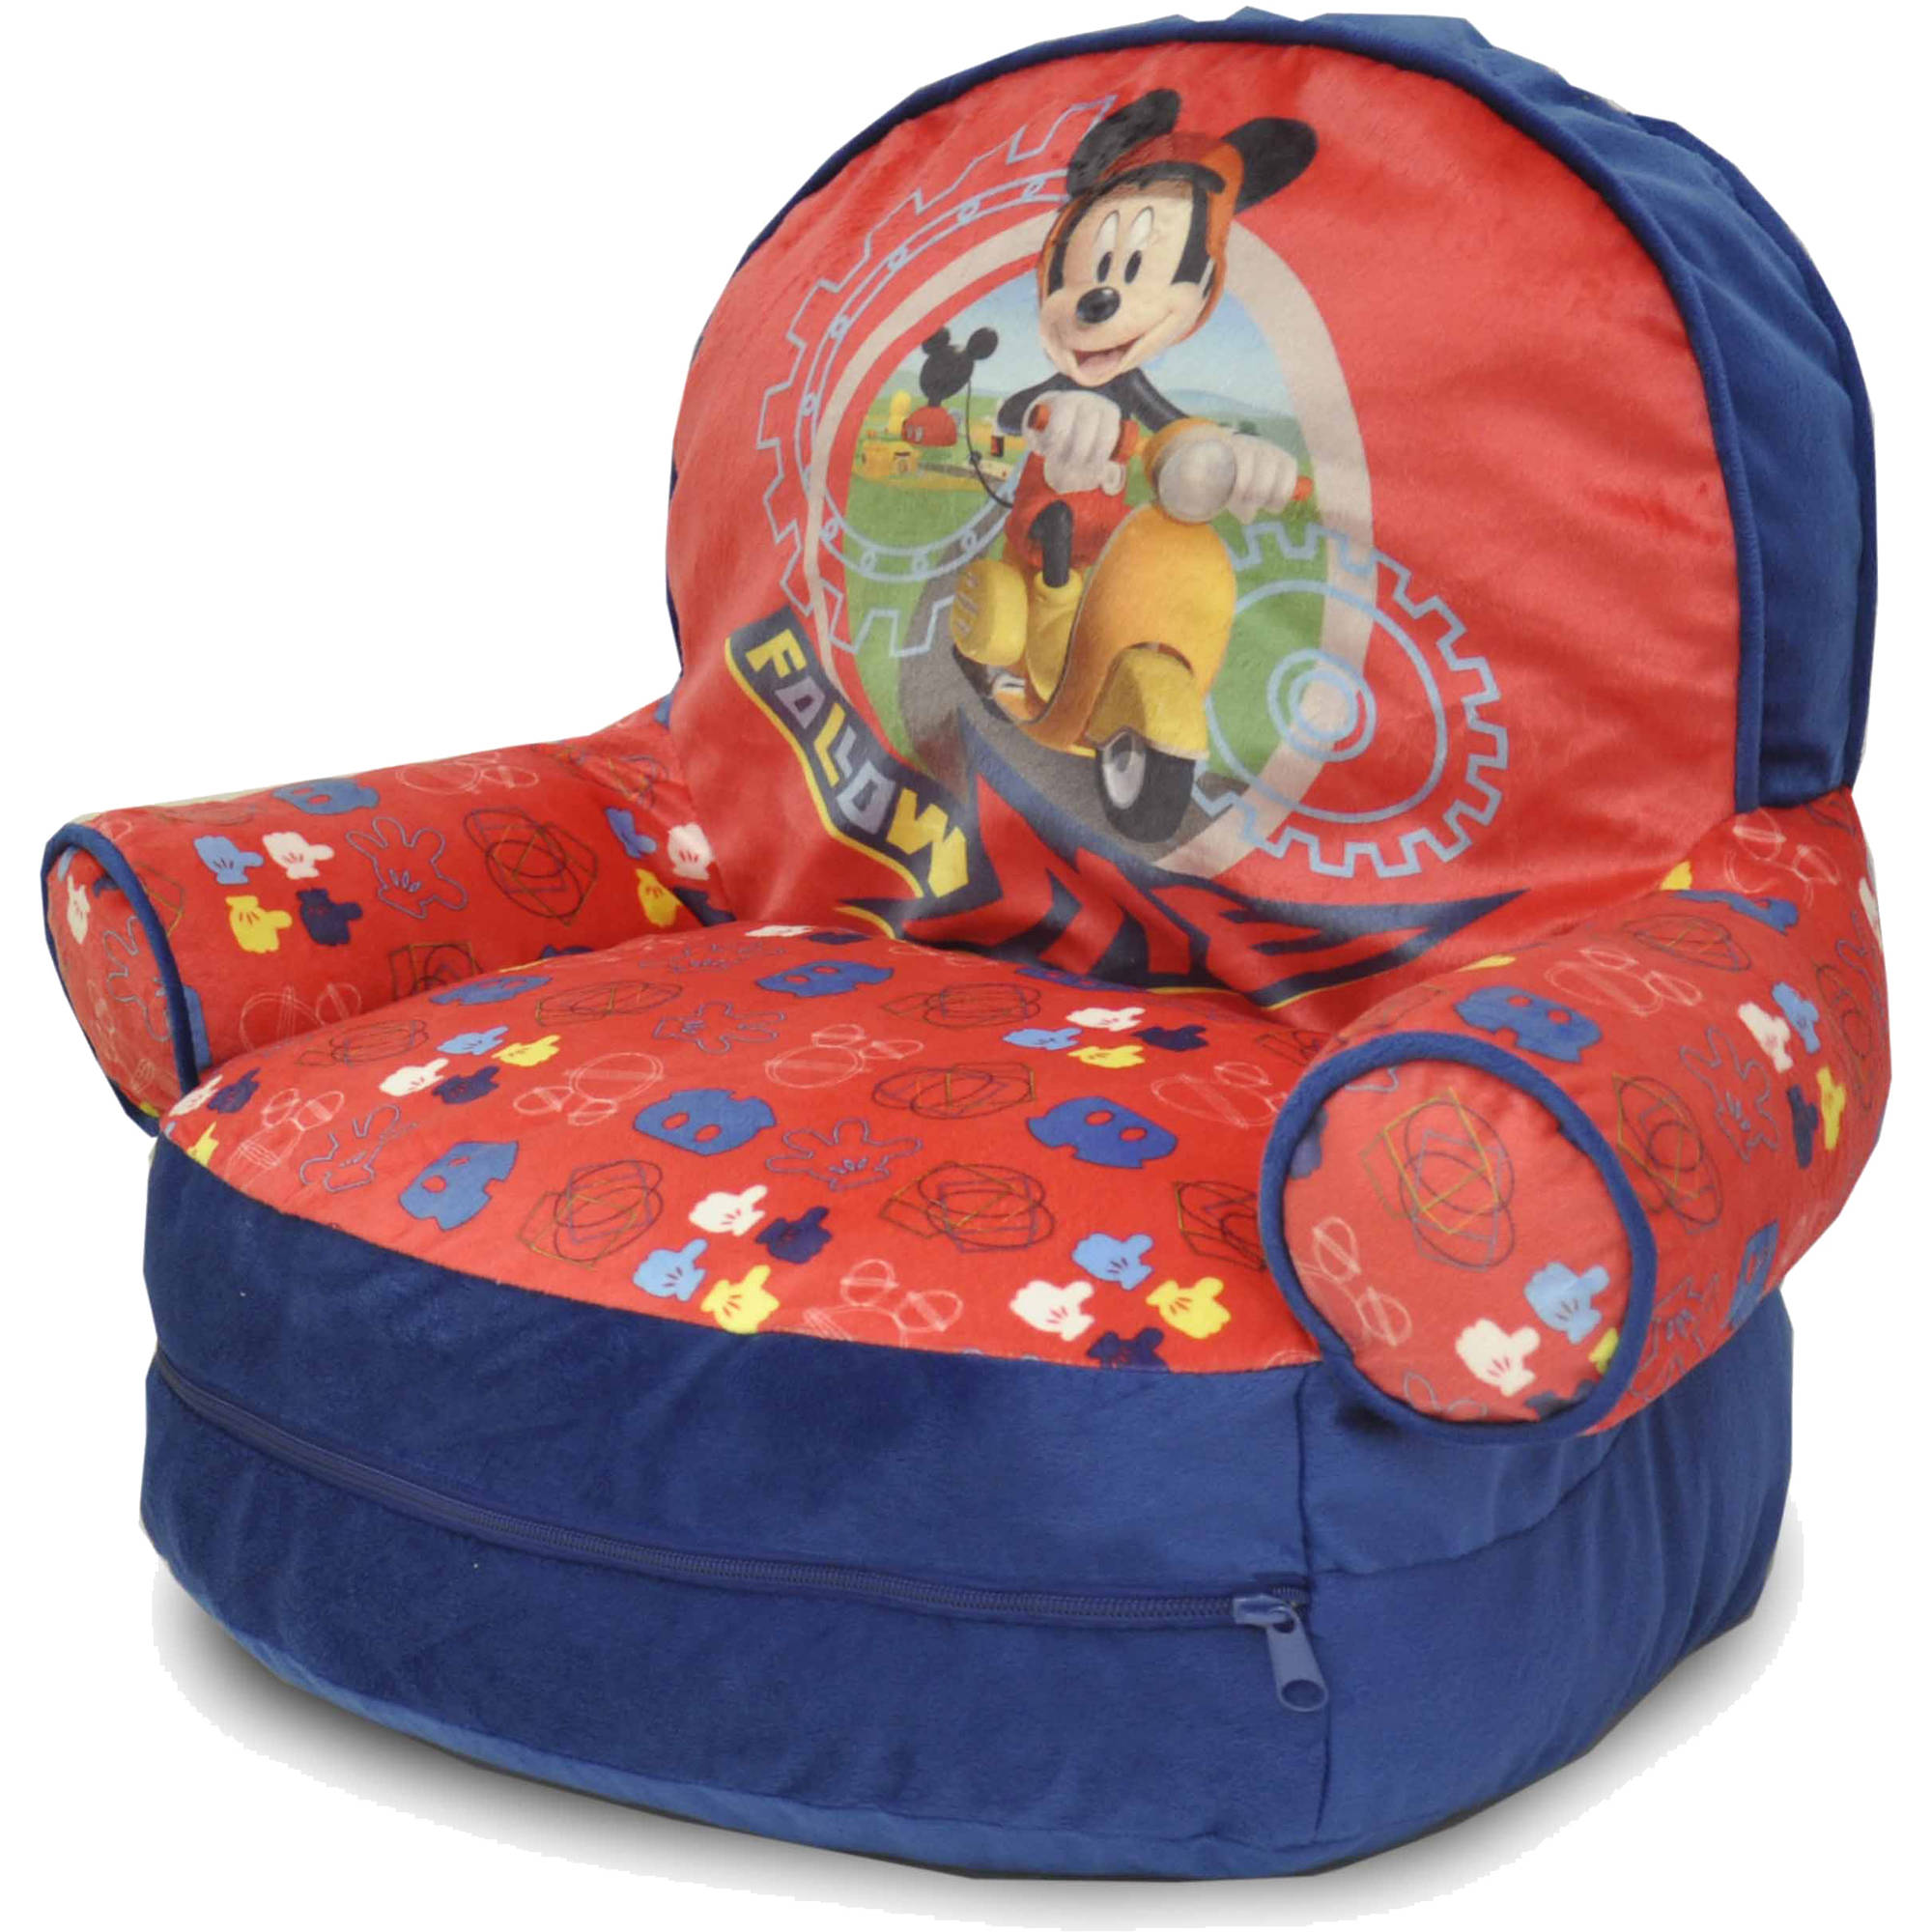 mickey mouse clubhouse bean bag chair bedroom silver disney with bonus slumber walmart com